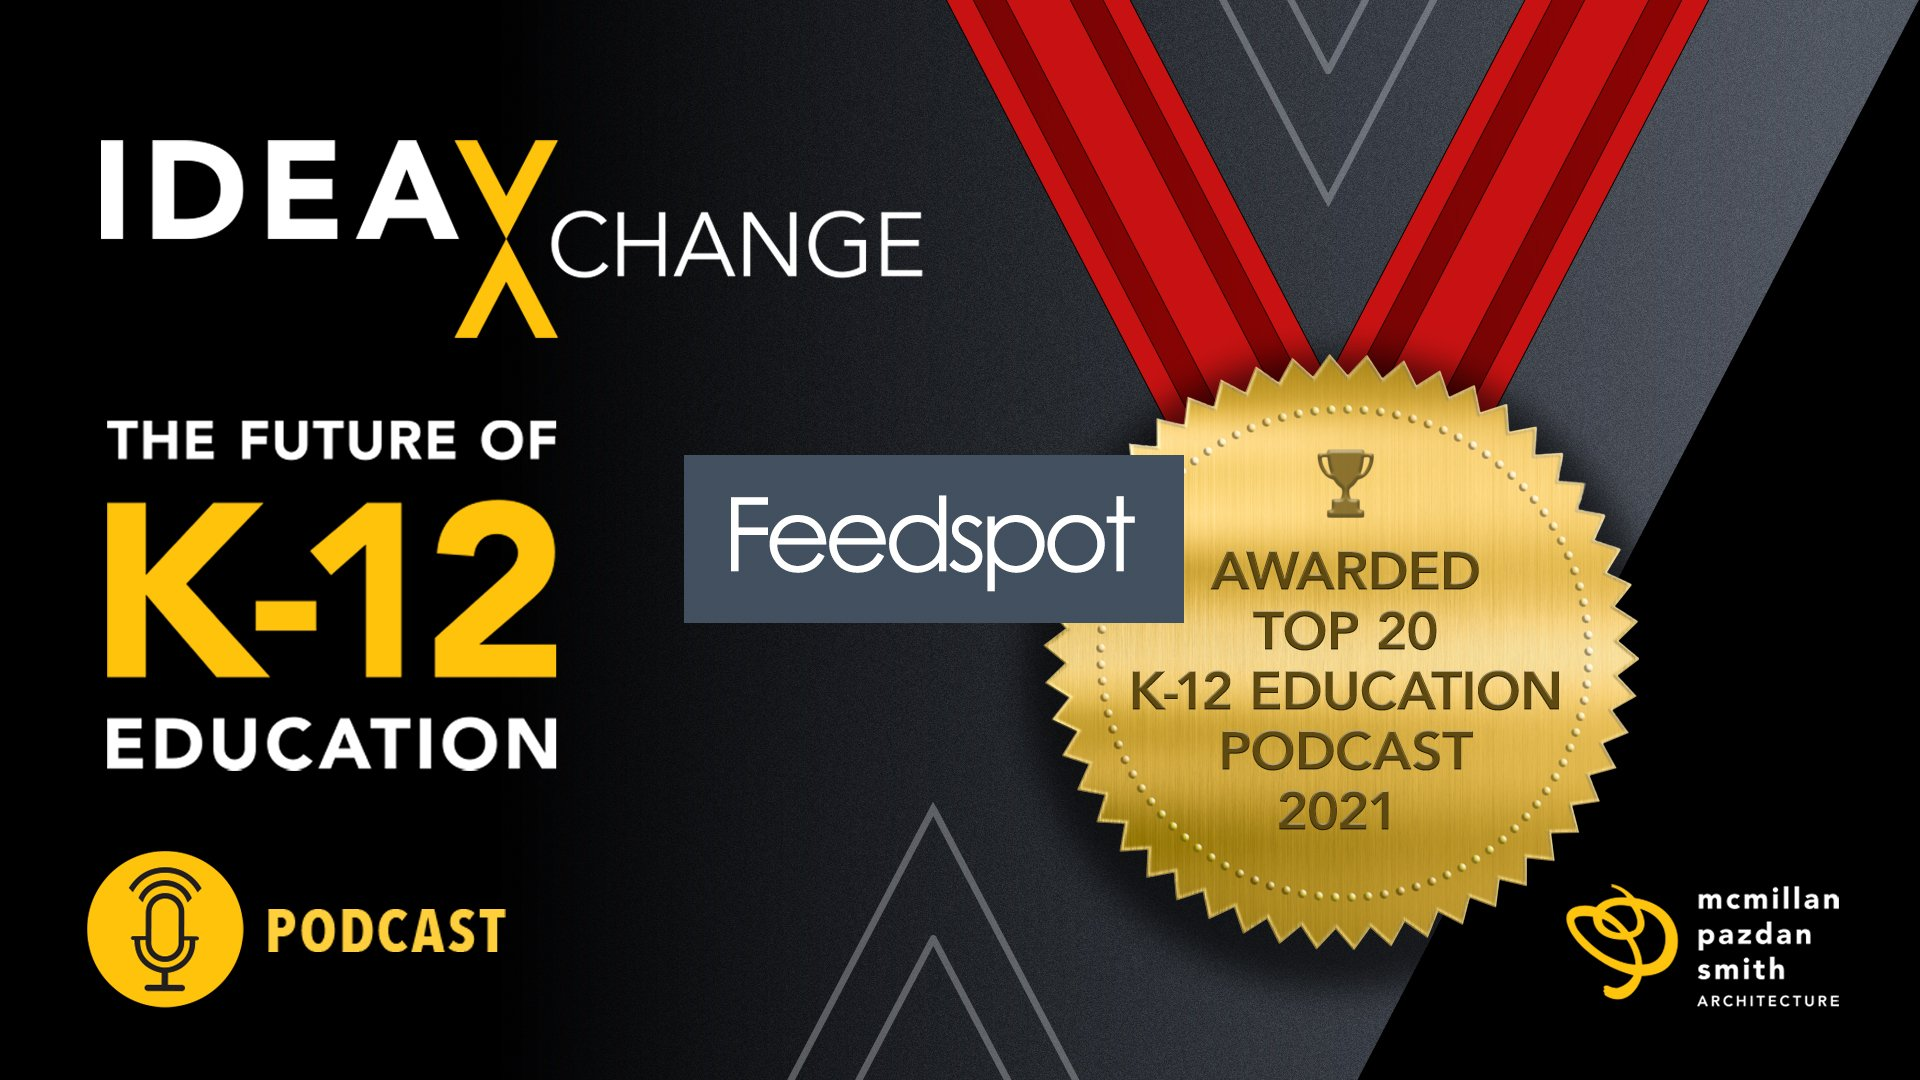 The Future of K-12 Education Podcast Receives Top 20 Content Award